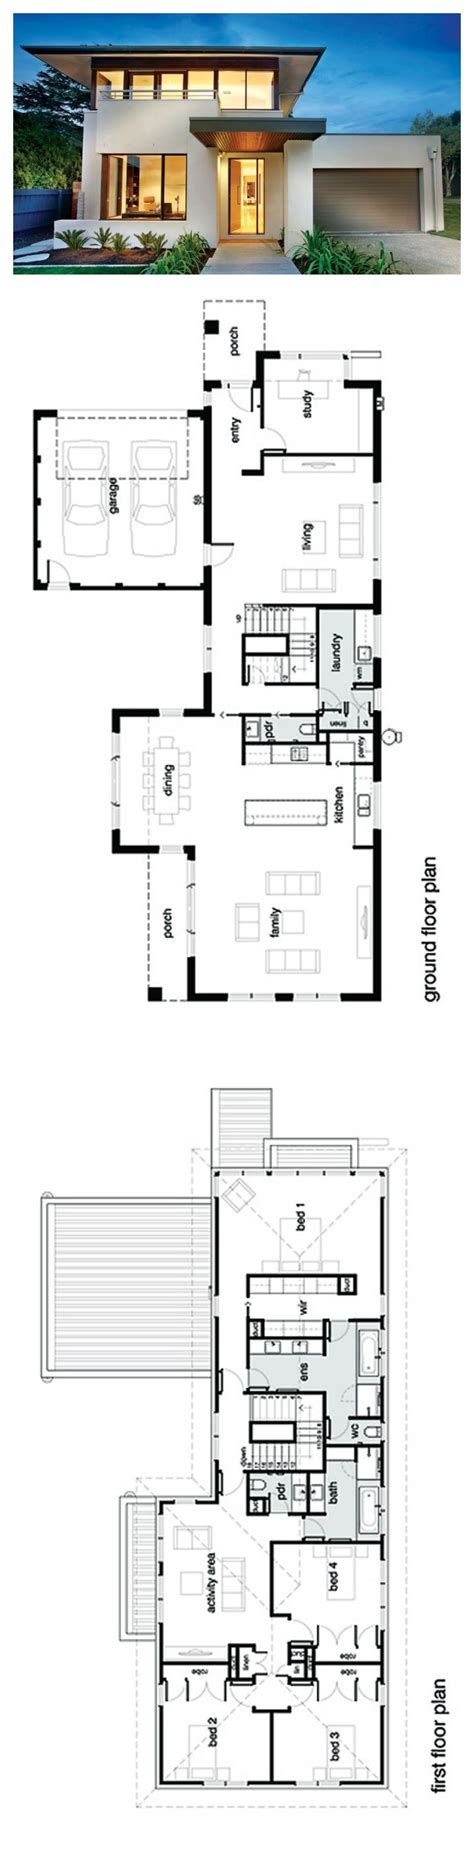 modern houses floor plans the 25 best ideas about modern house plans on pinterest modern house floor plans